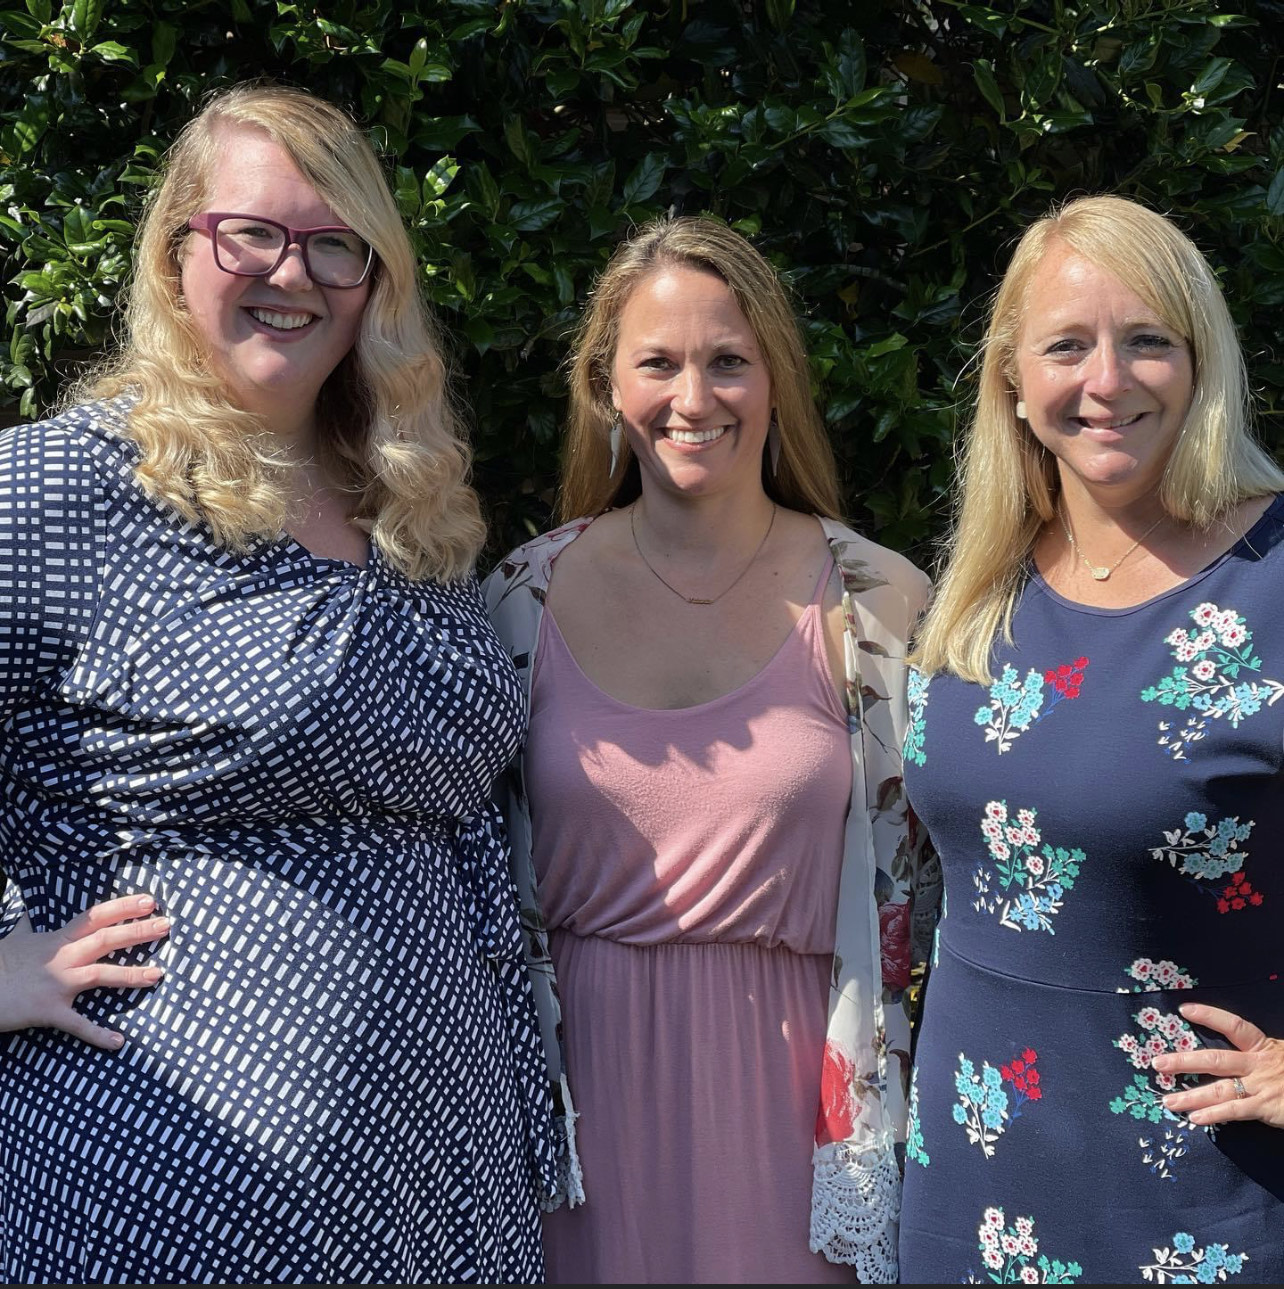 Three female counselors pose for a photo.